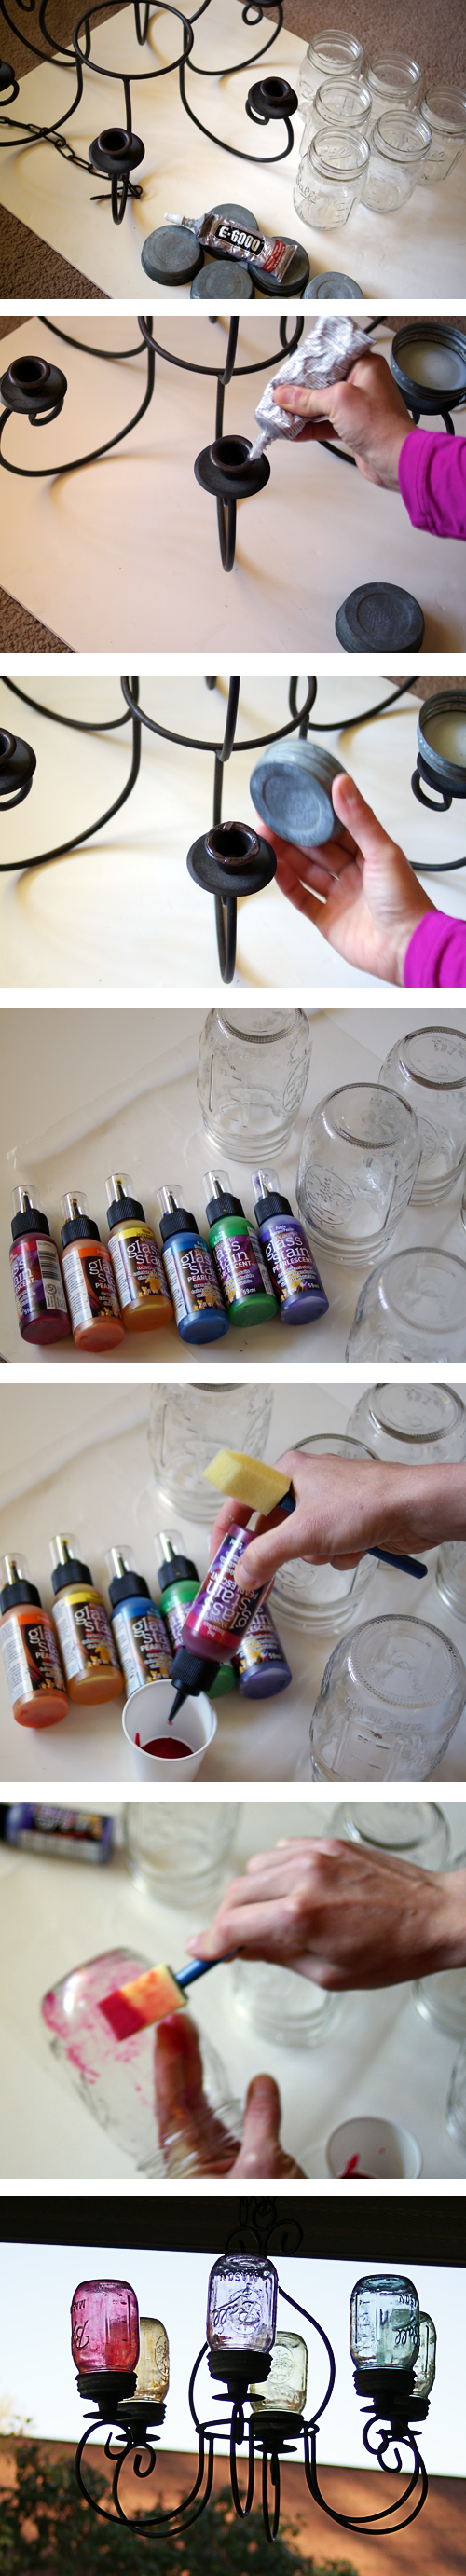 How to make a #MasonJar Chandelier #DIY #craft @savedbyloves